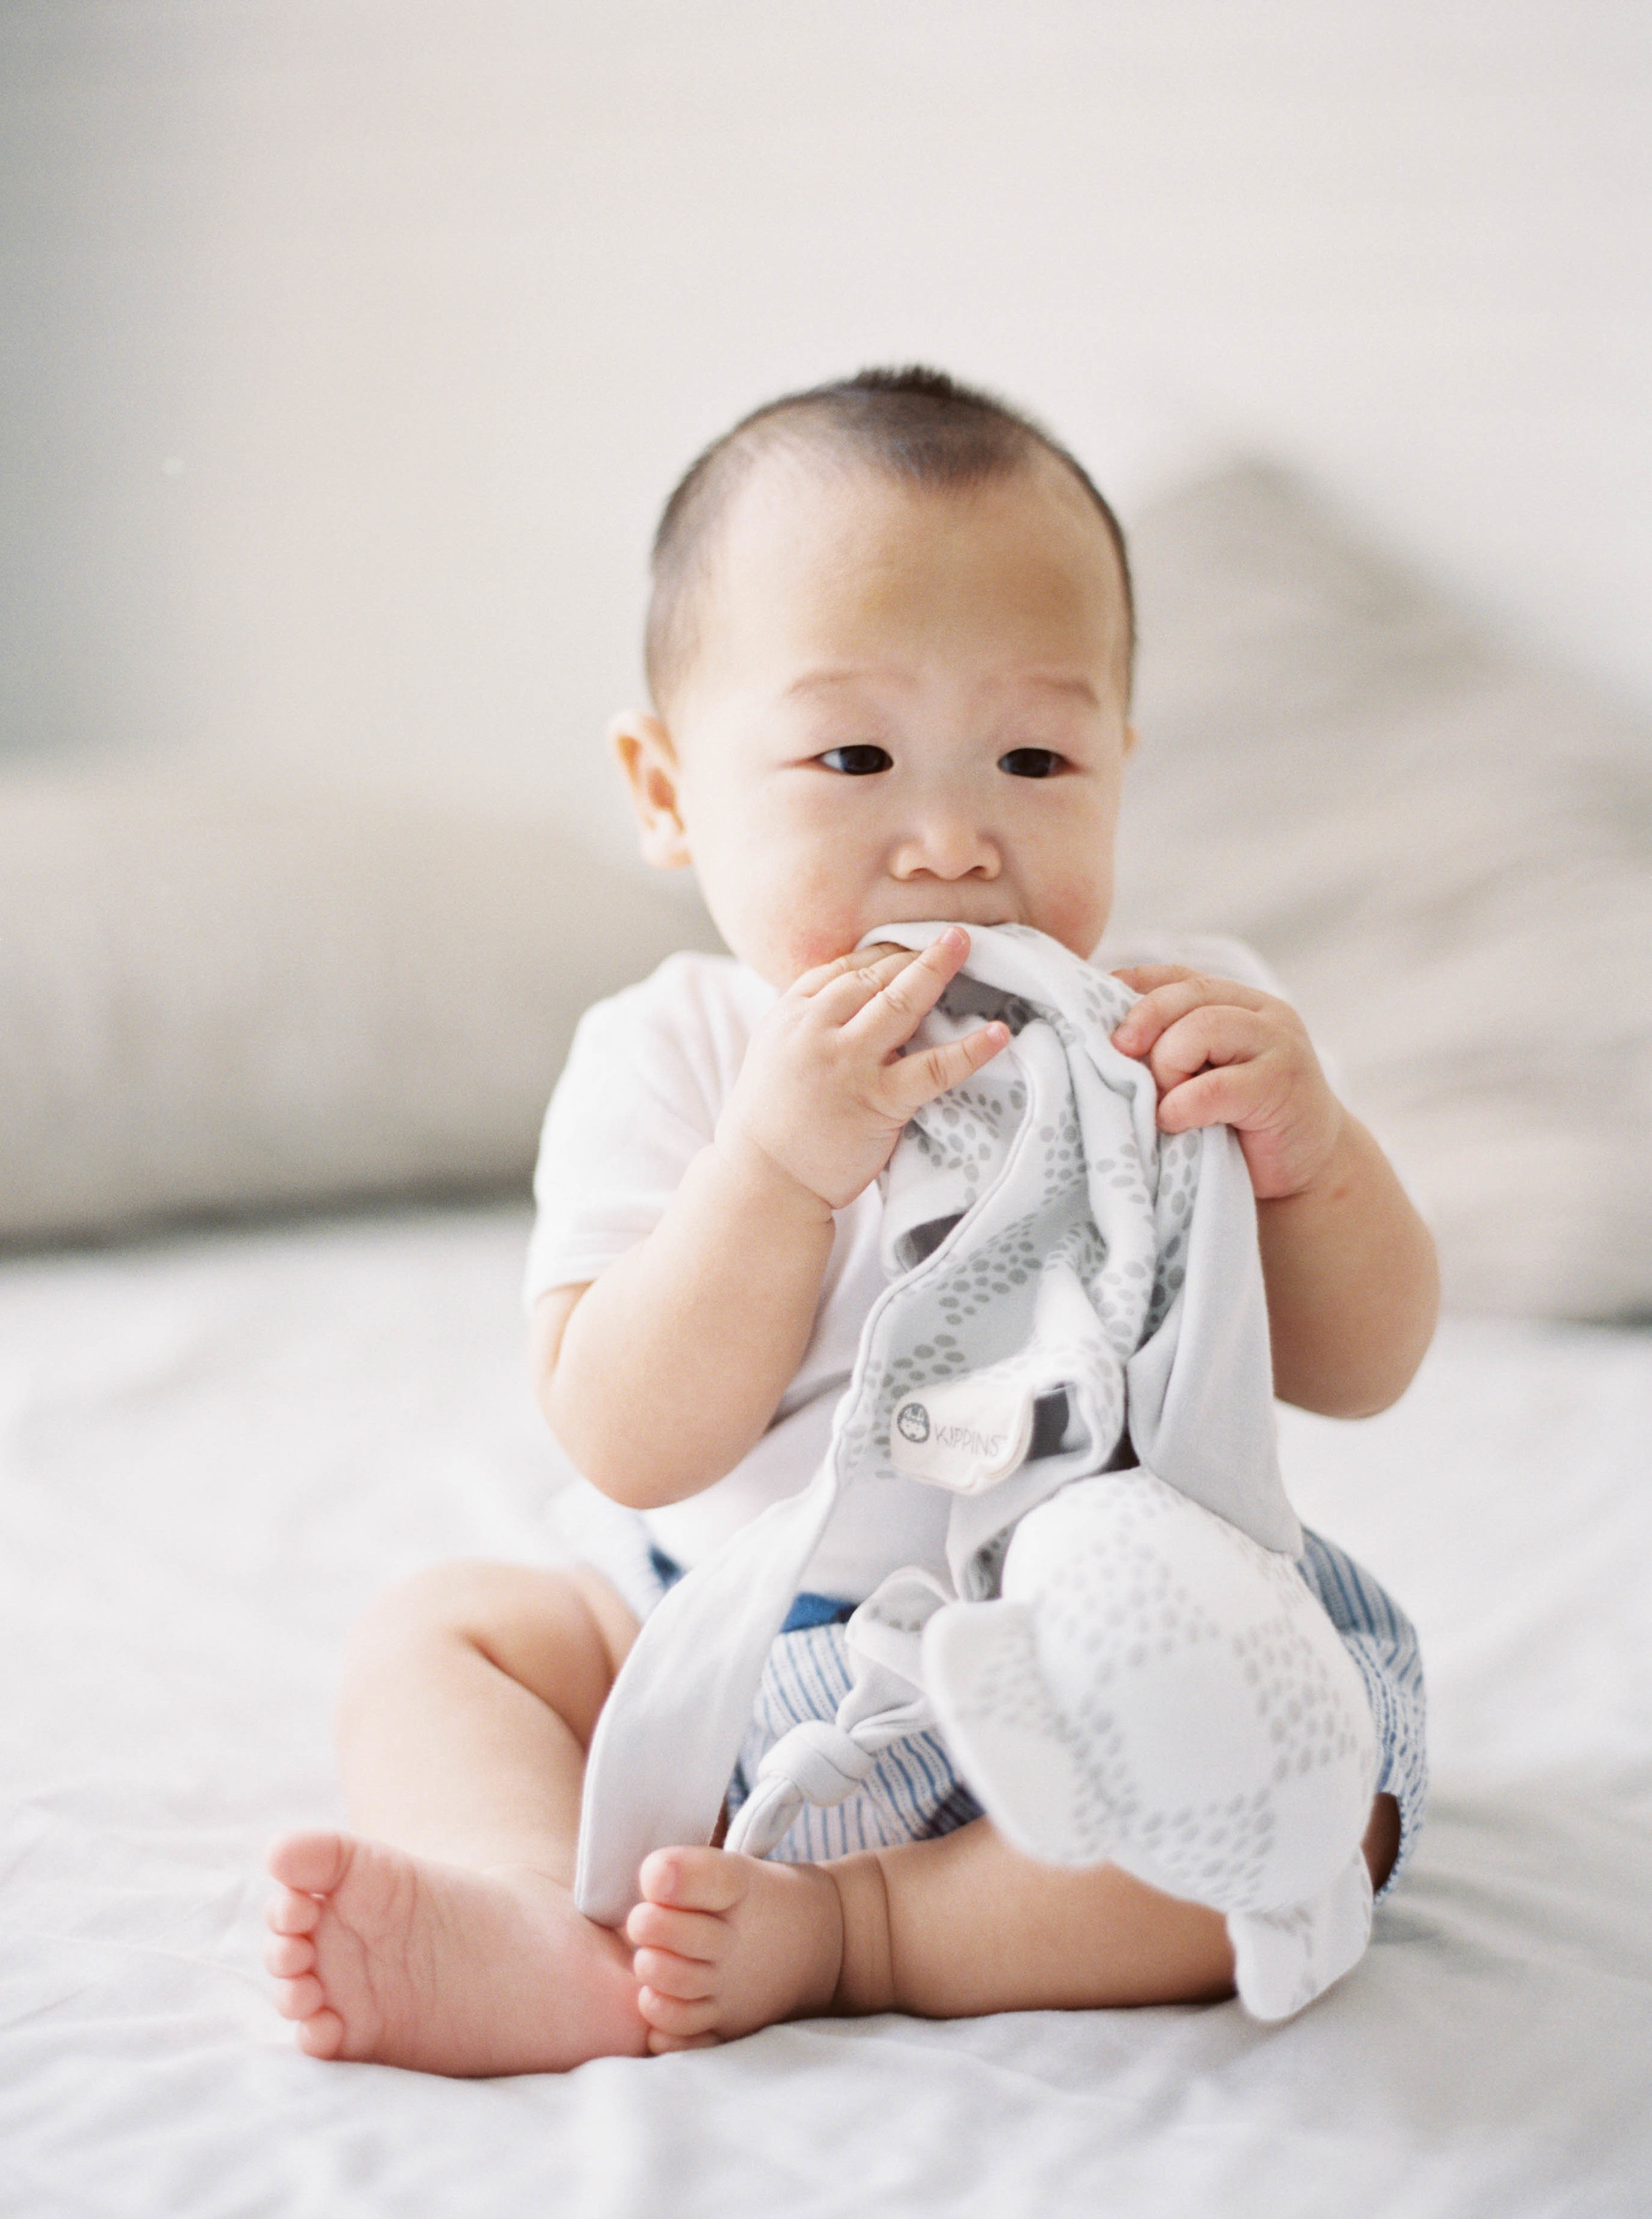 Cody-At Home-Simple-Baby Photography-8 Months Old-Studio June-Film Photography-Jakarta-1.jpg